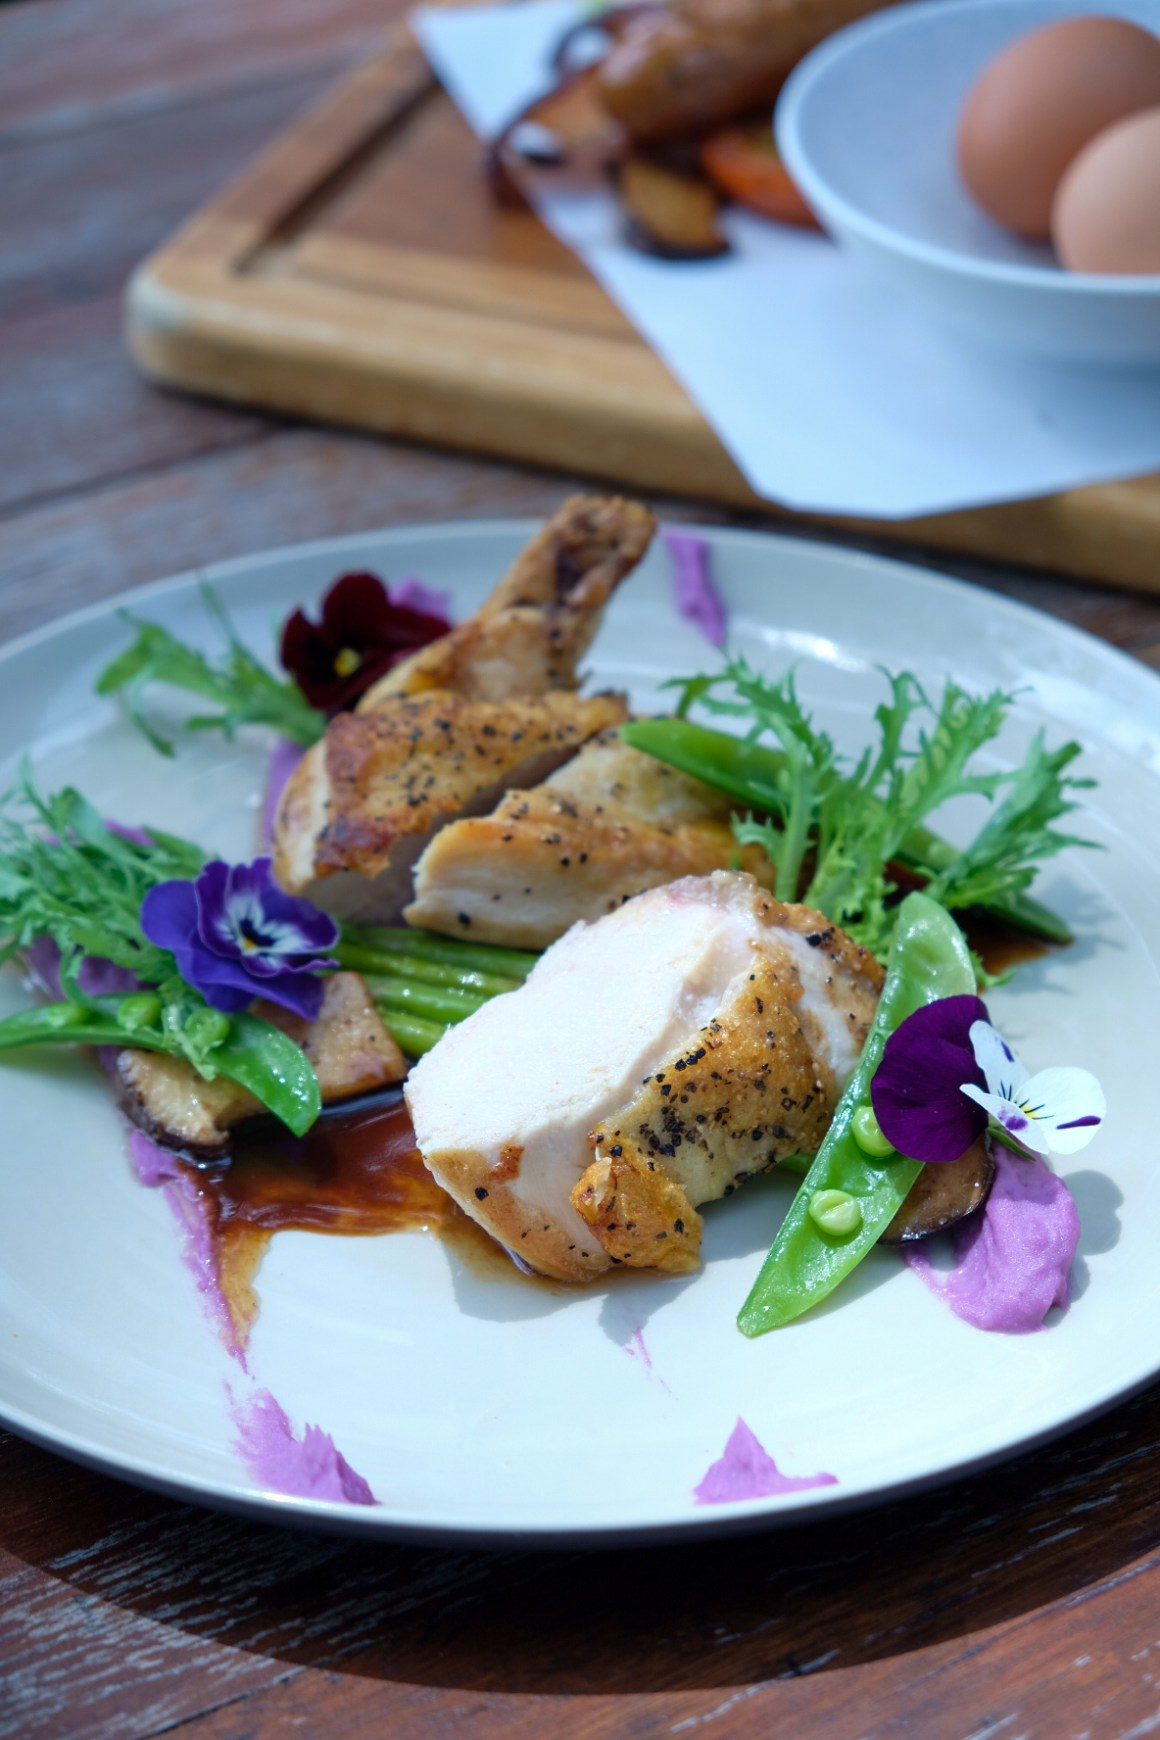 RedDot Brewhouse @ Dempsey, Dog-friendly - Pan Roasted Chicken Breast ($22)